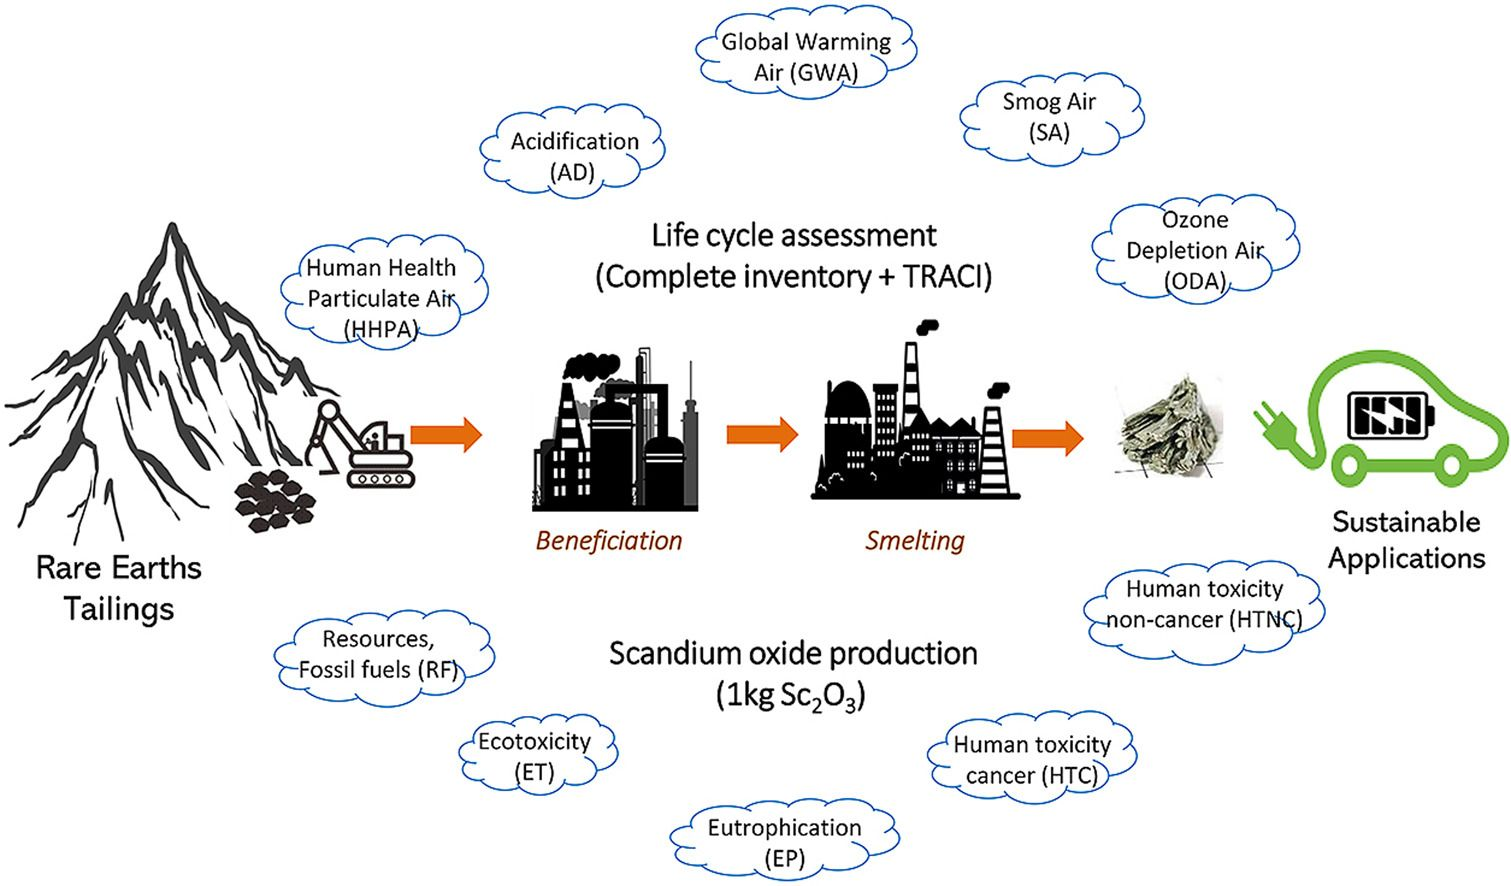 Environmental Impacts of Scandium Oxide Production from Rare Earths Tailings of Bayan Obo Mine